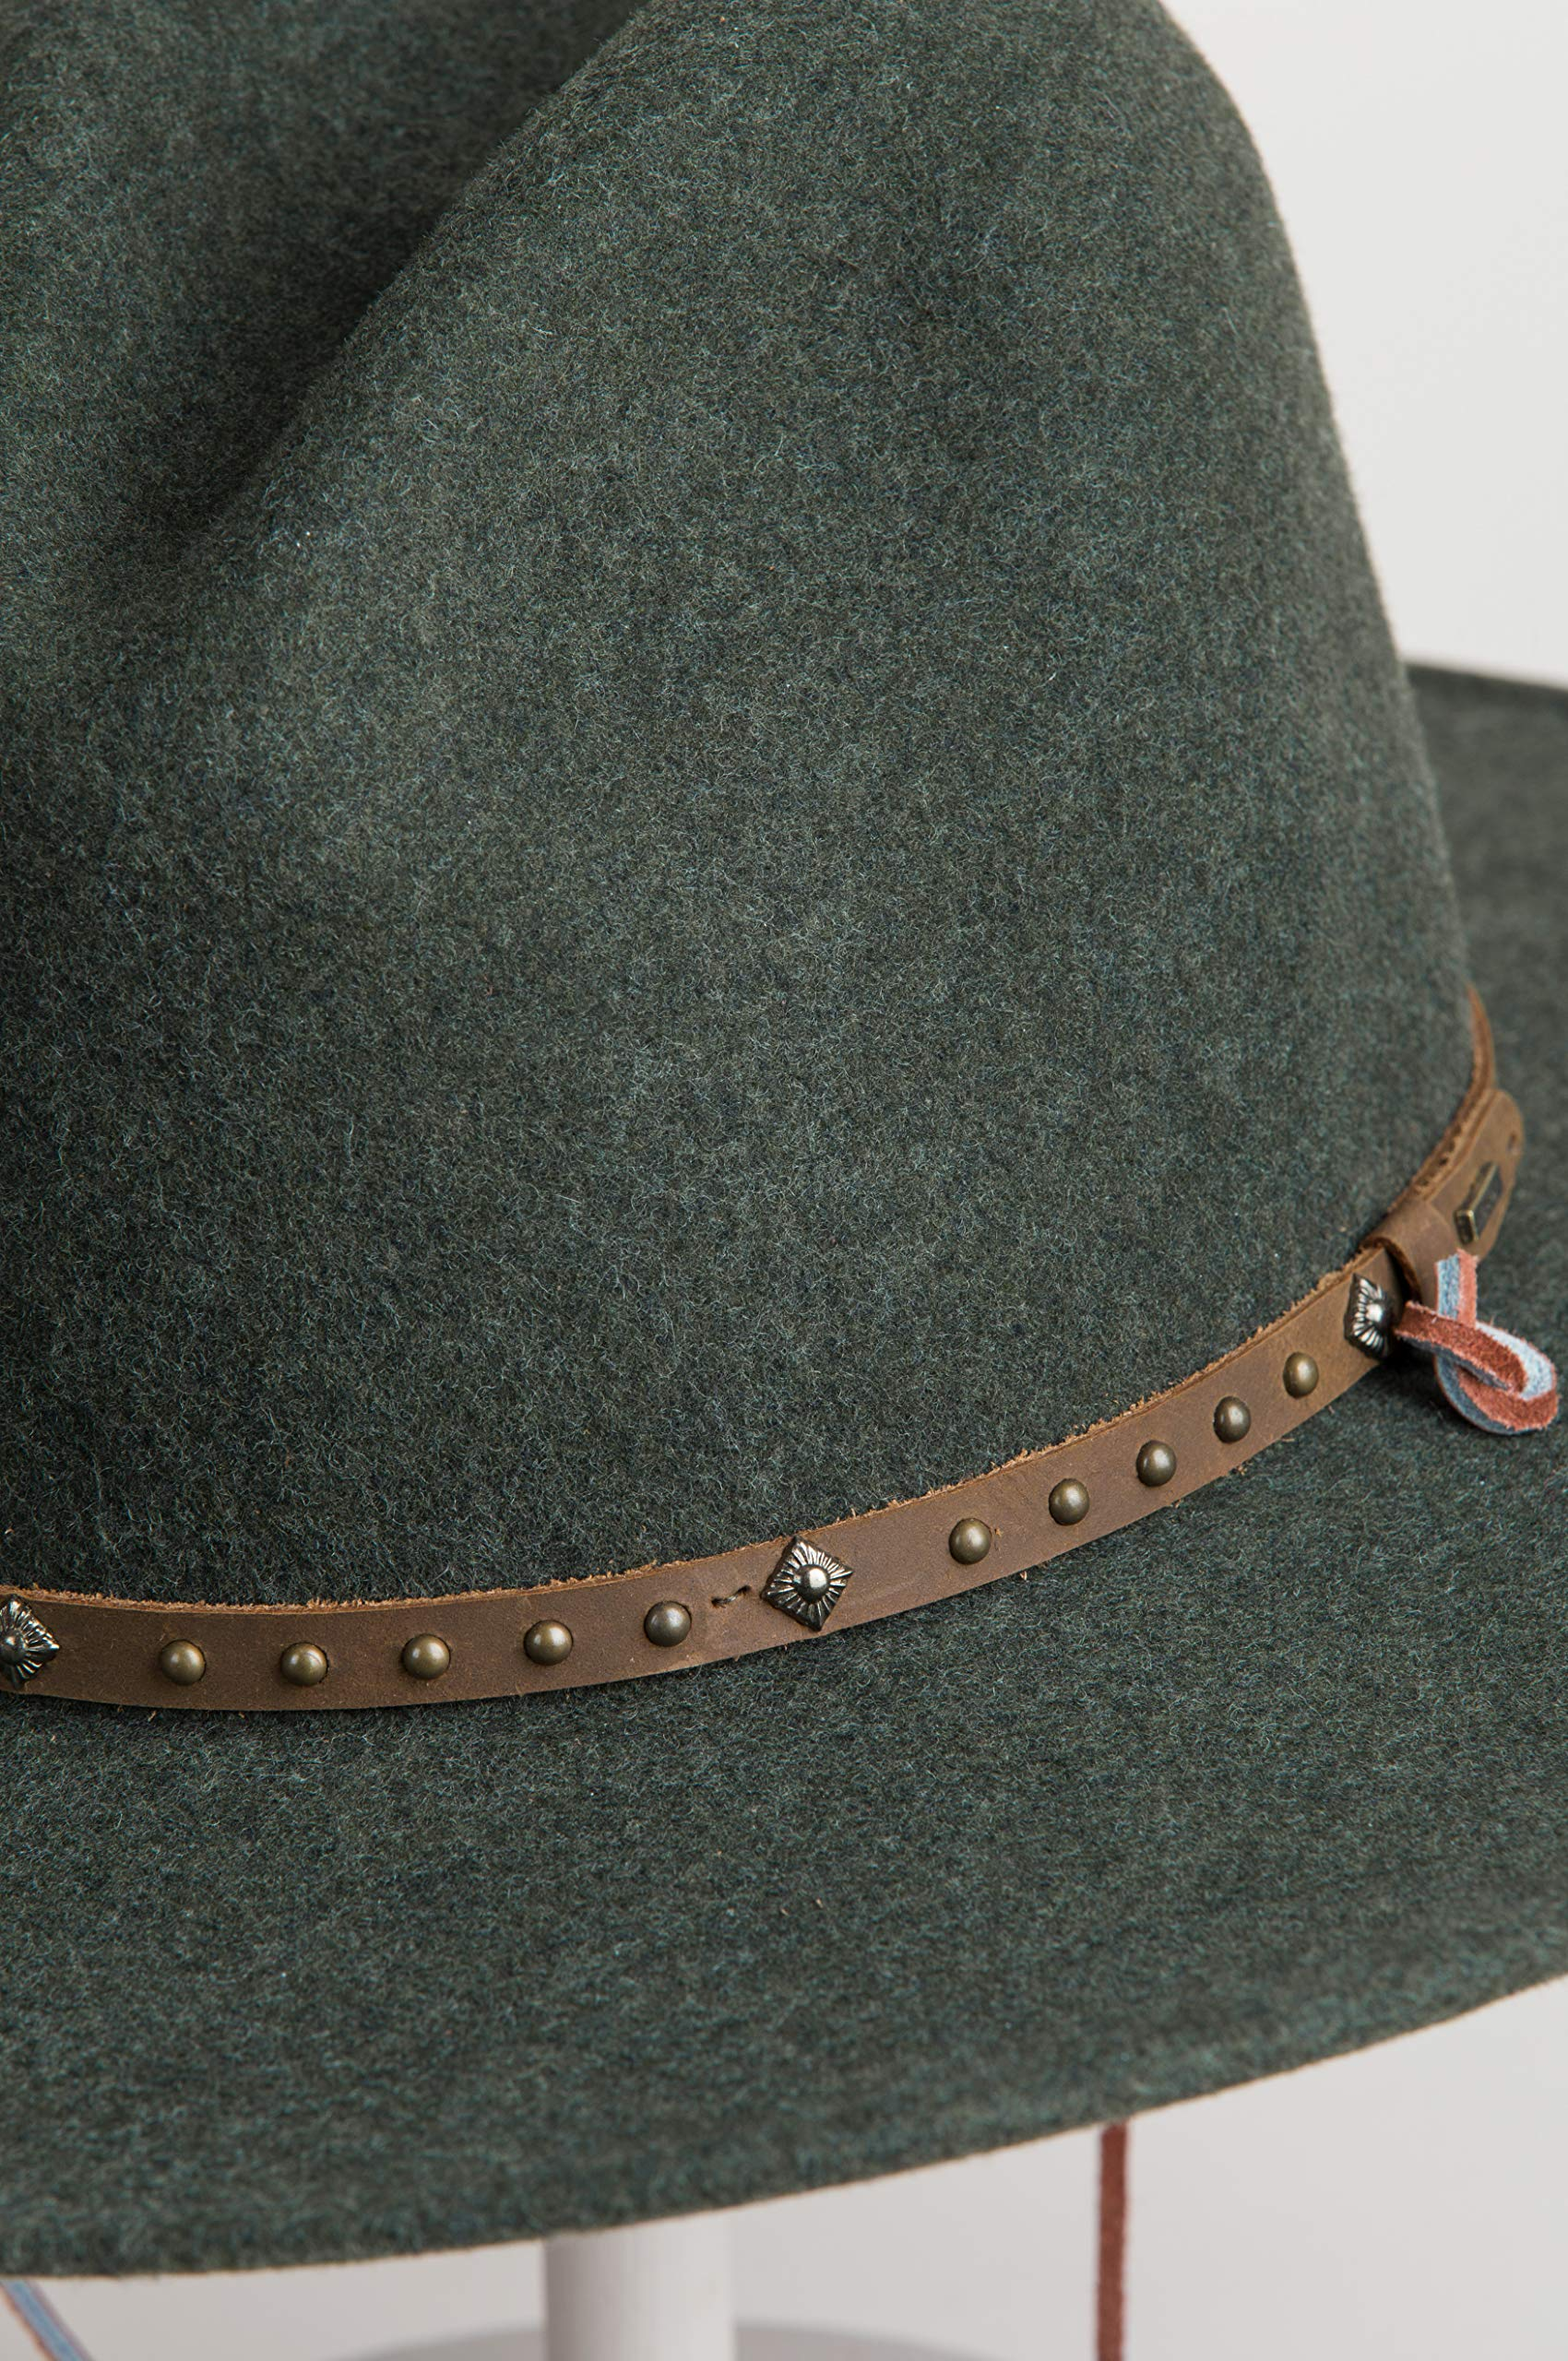 Men's Lonesome Trail Crushable Wool Stetson Hat, OLIVE MIX, Size SMALL by Stetson (Image #5)